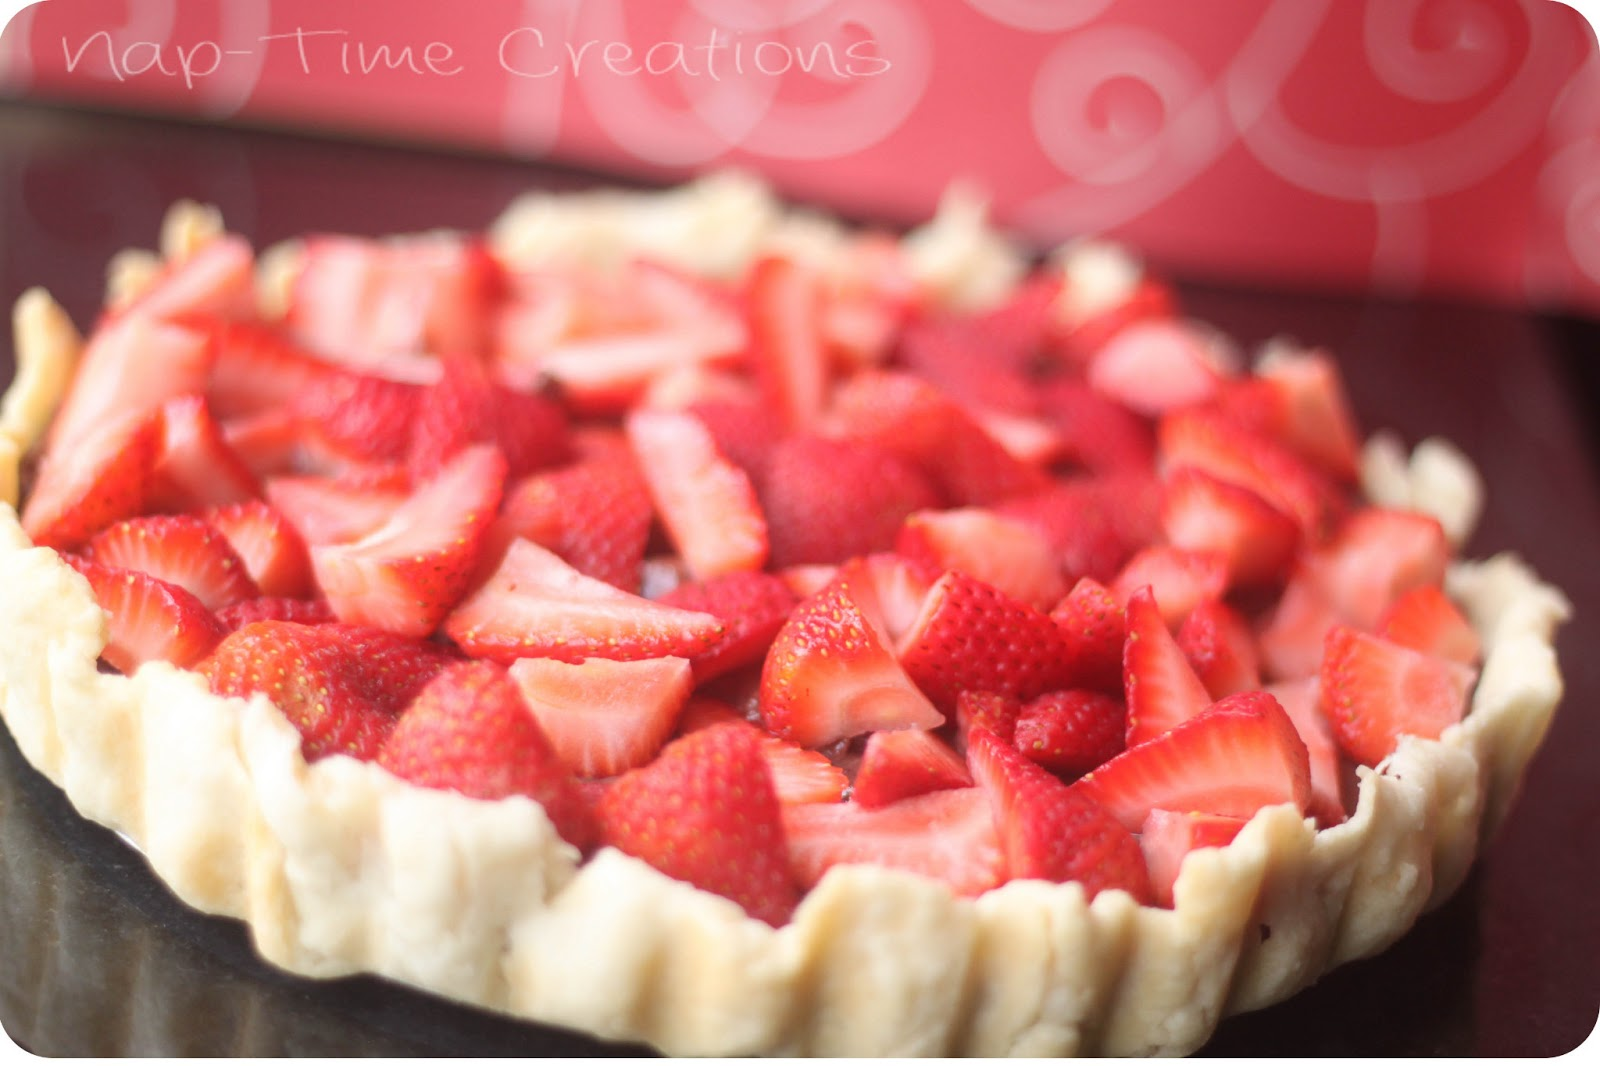 Strawberry Tart {recipe} - Nap-time Creations